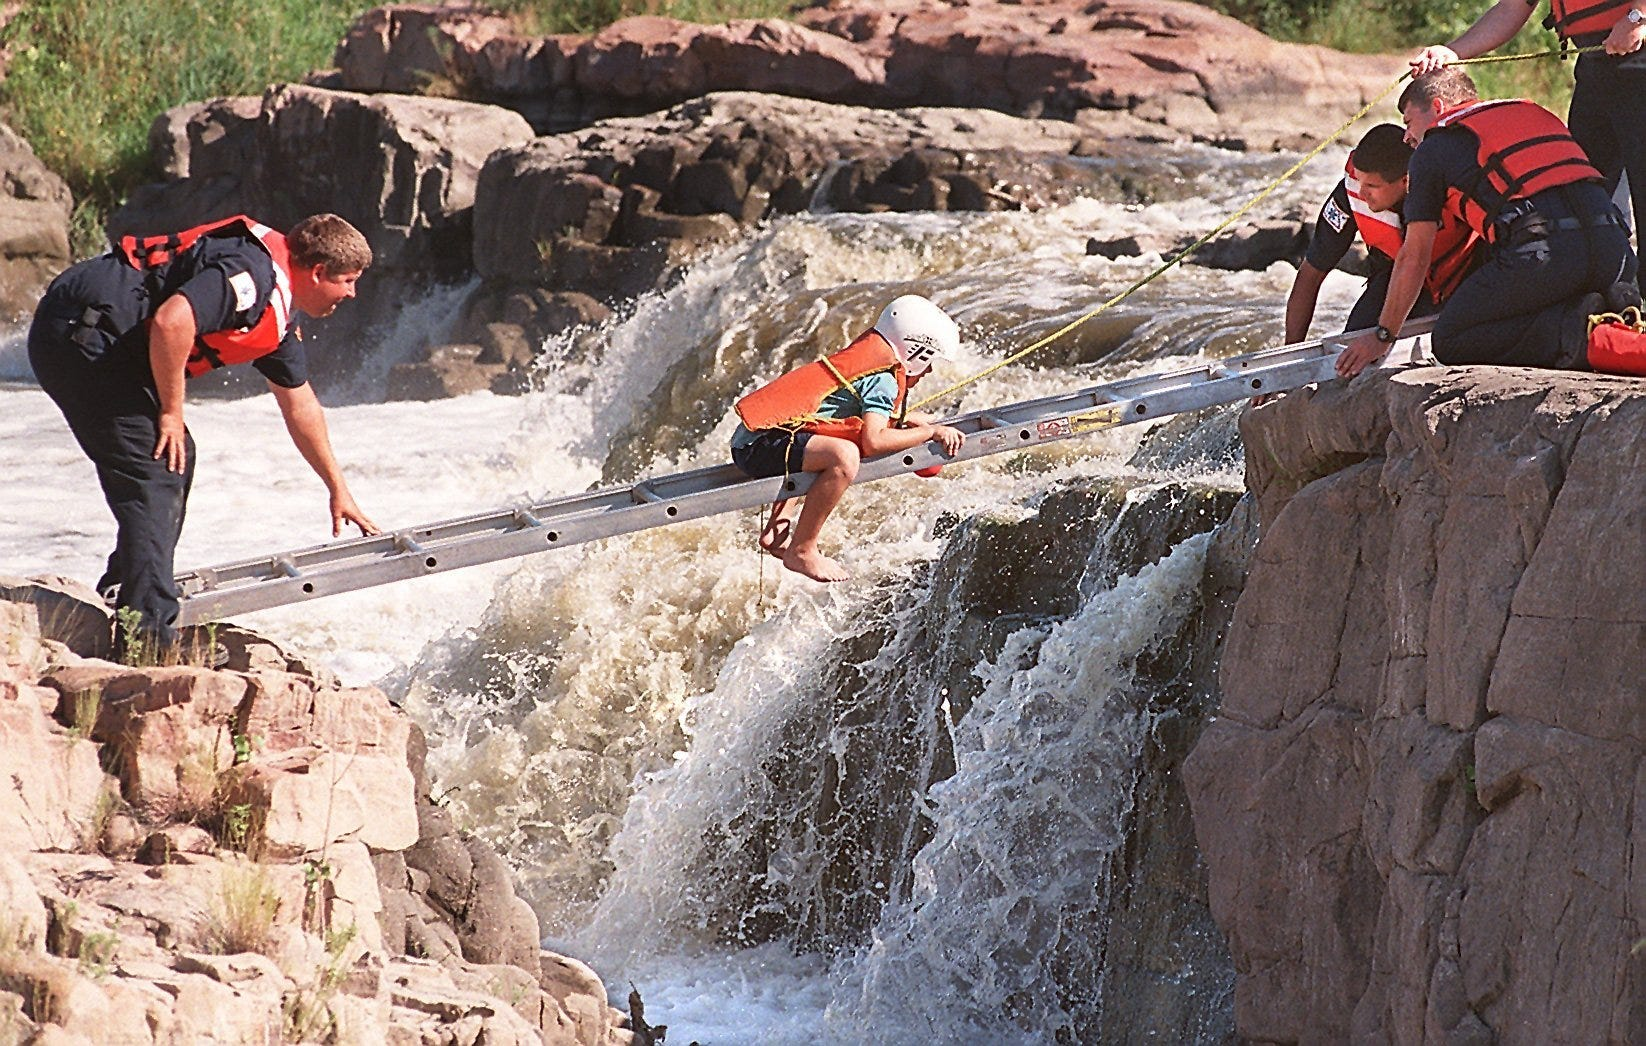 Sioux Falls council votes to hire loss control firm to study Falls Park risks | Argus Leader